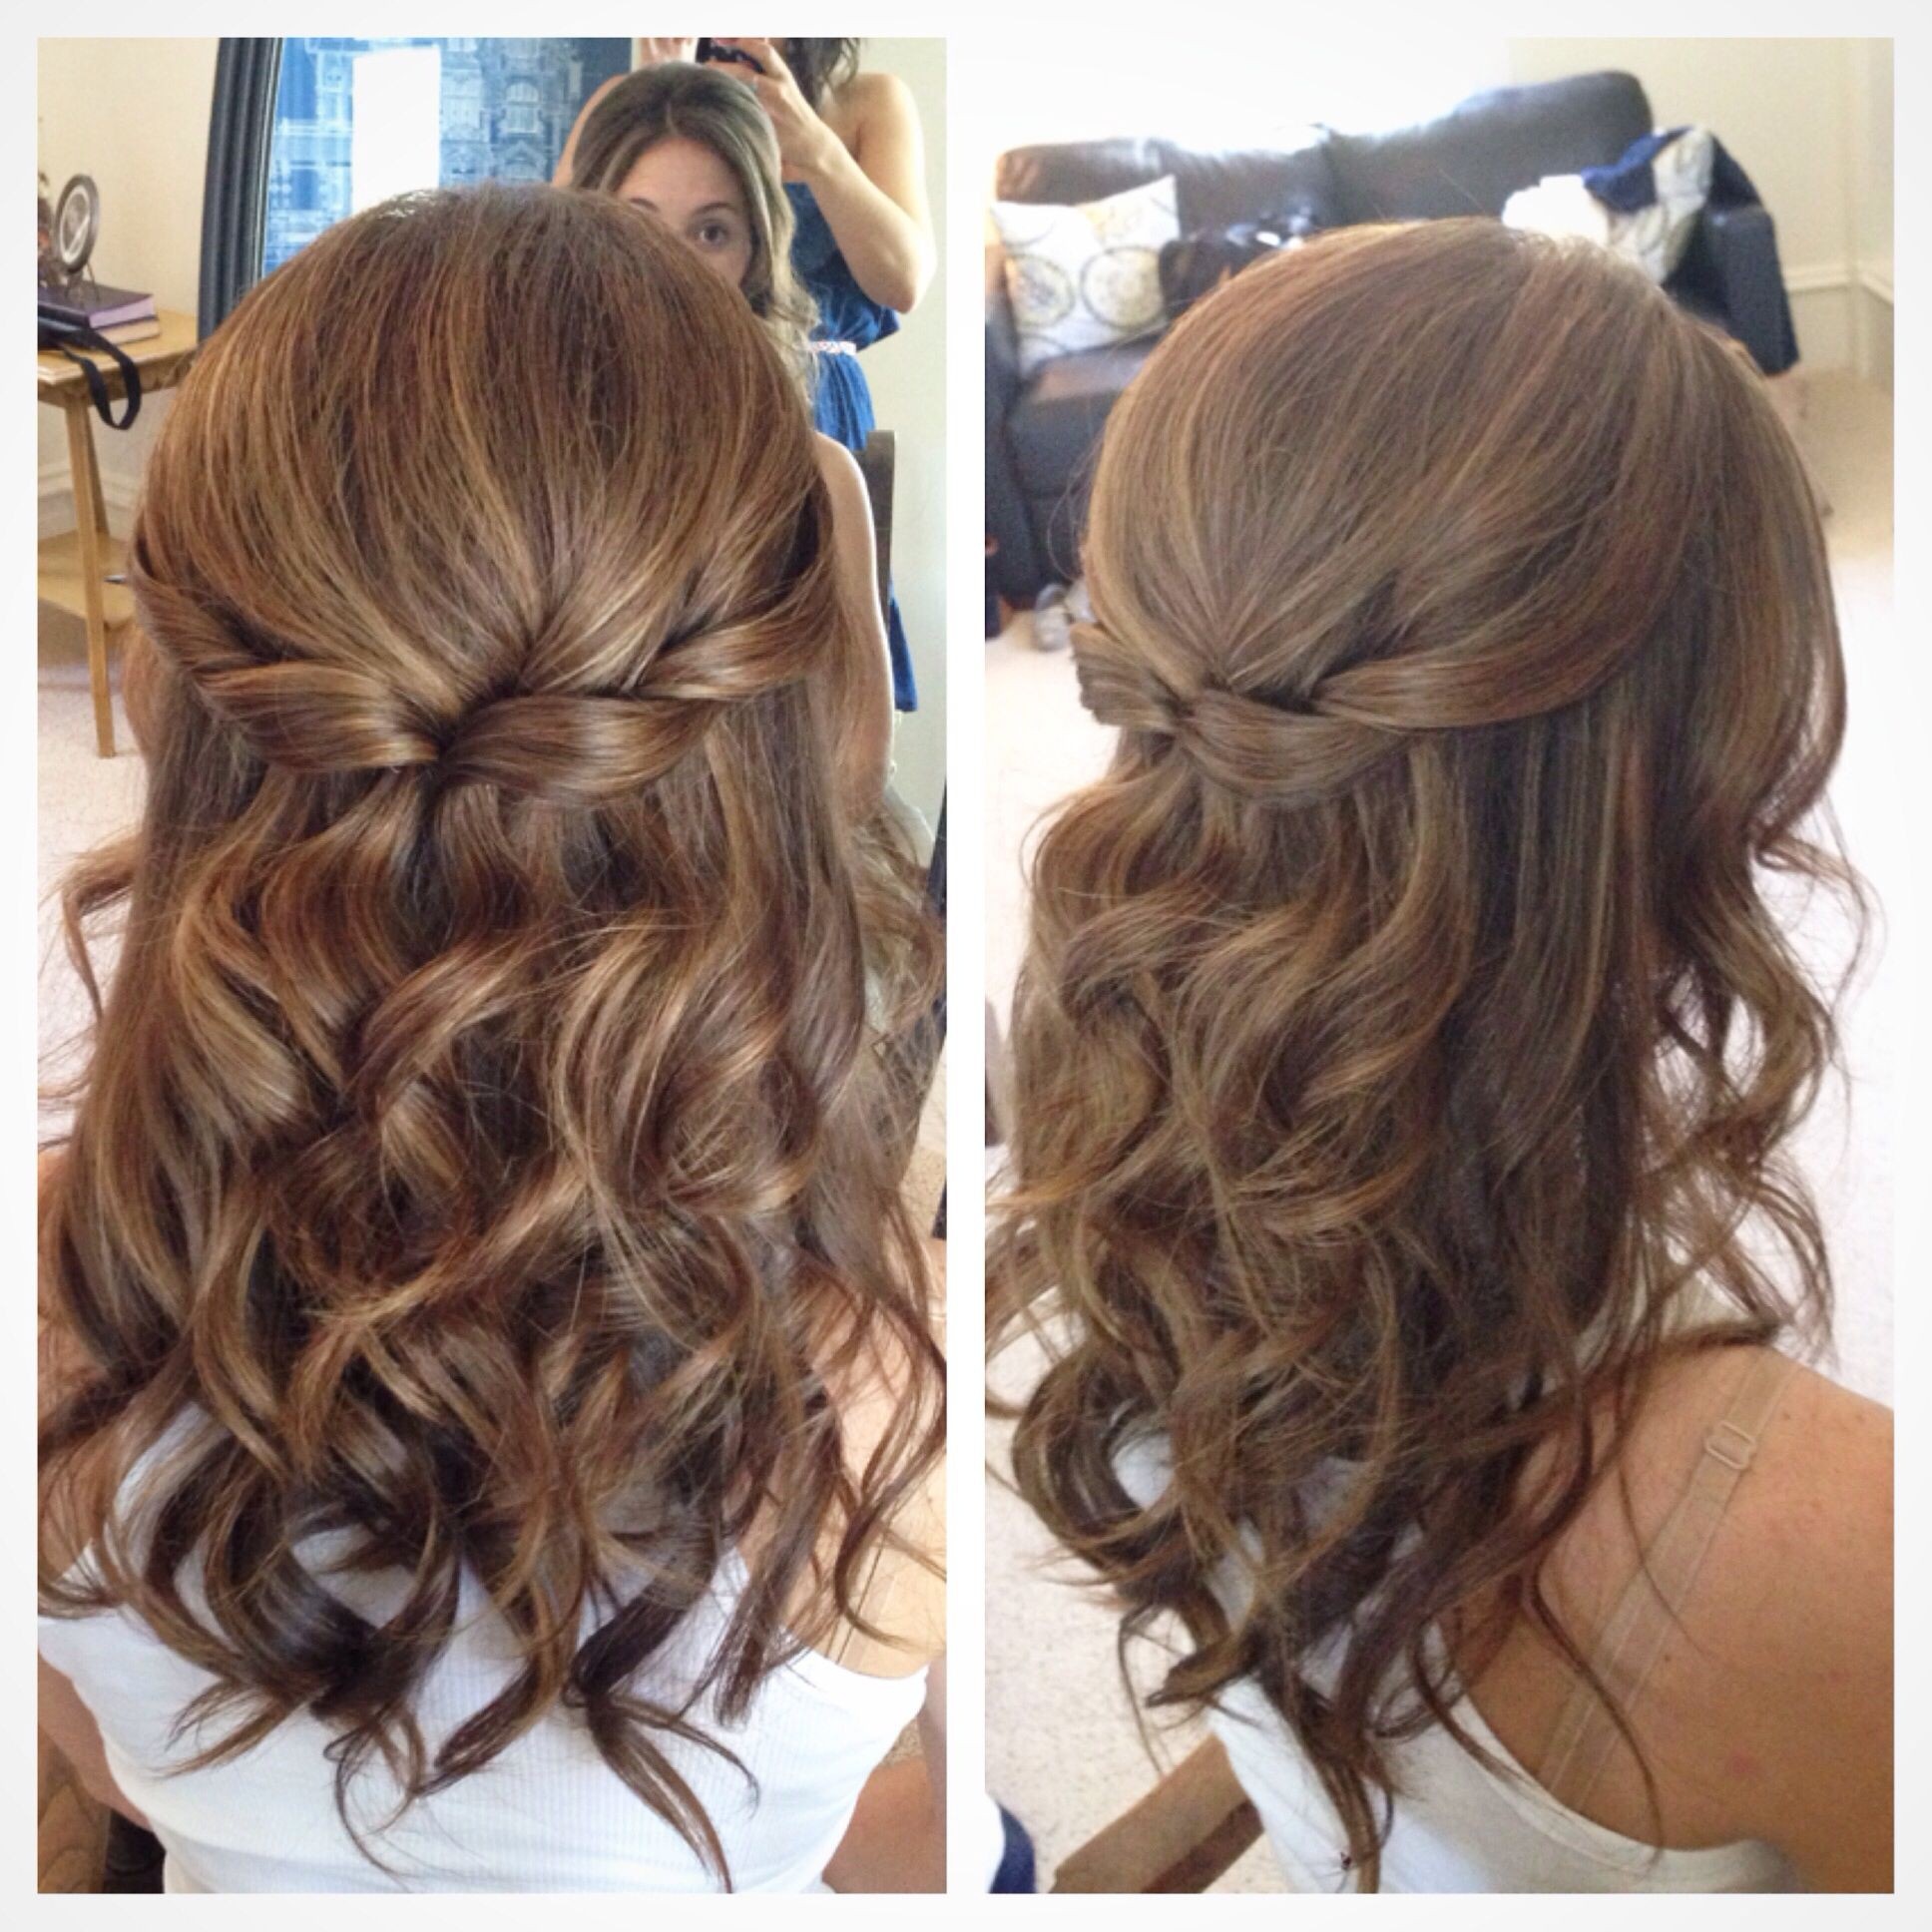 Well Liked Down Medium Hairstyles With Half Up Half Down Wedding Hairstyles For Medium Length Hair (View 4 of 20)